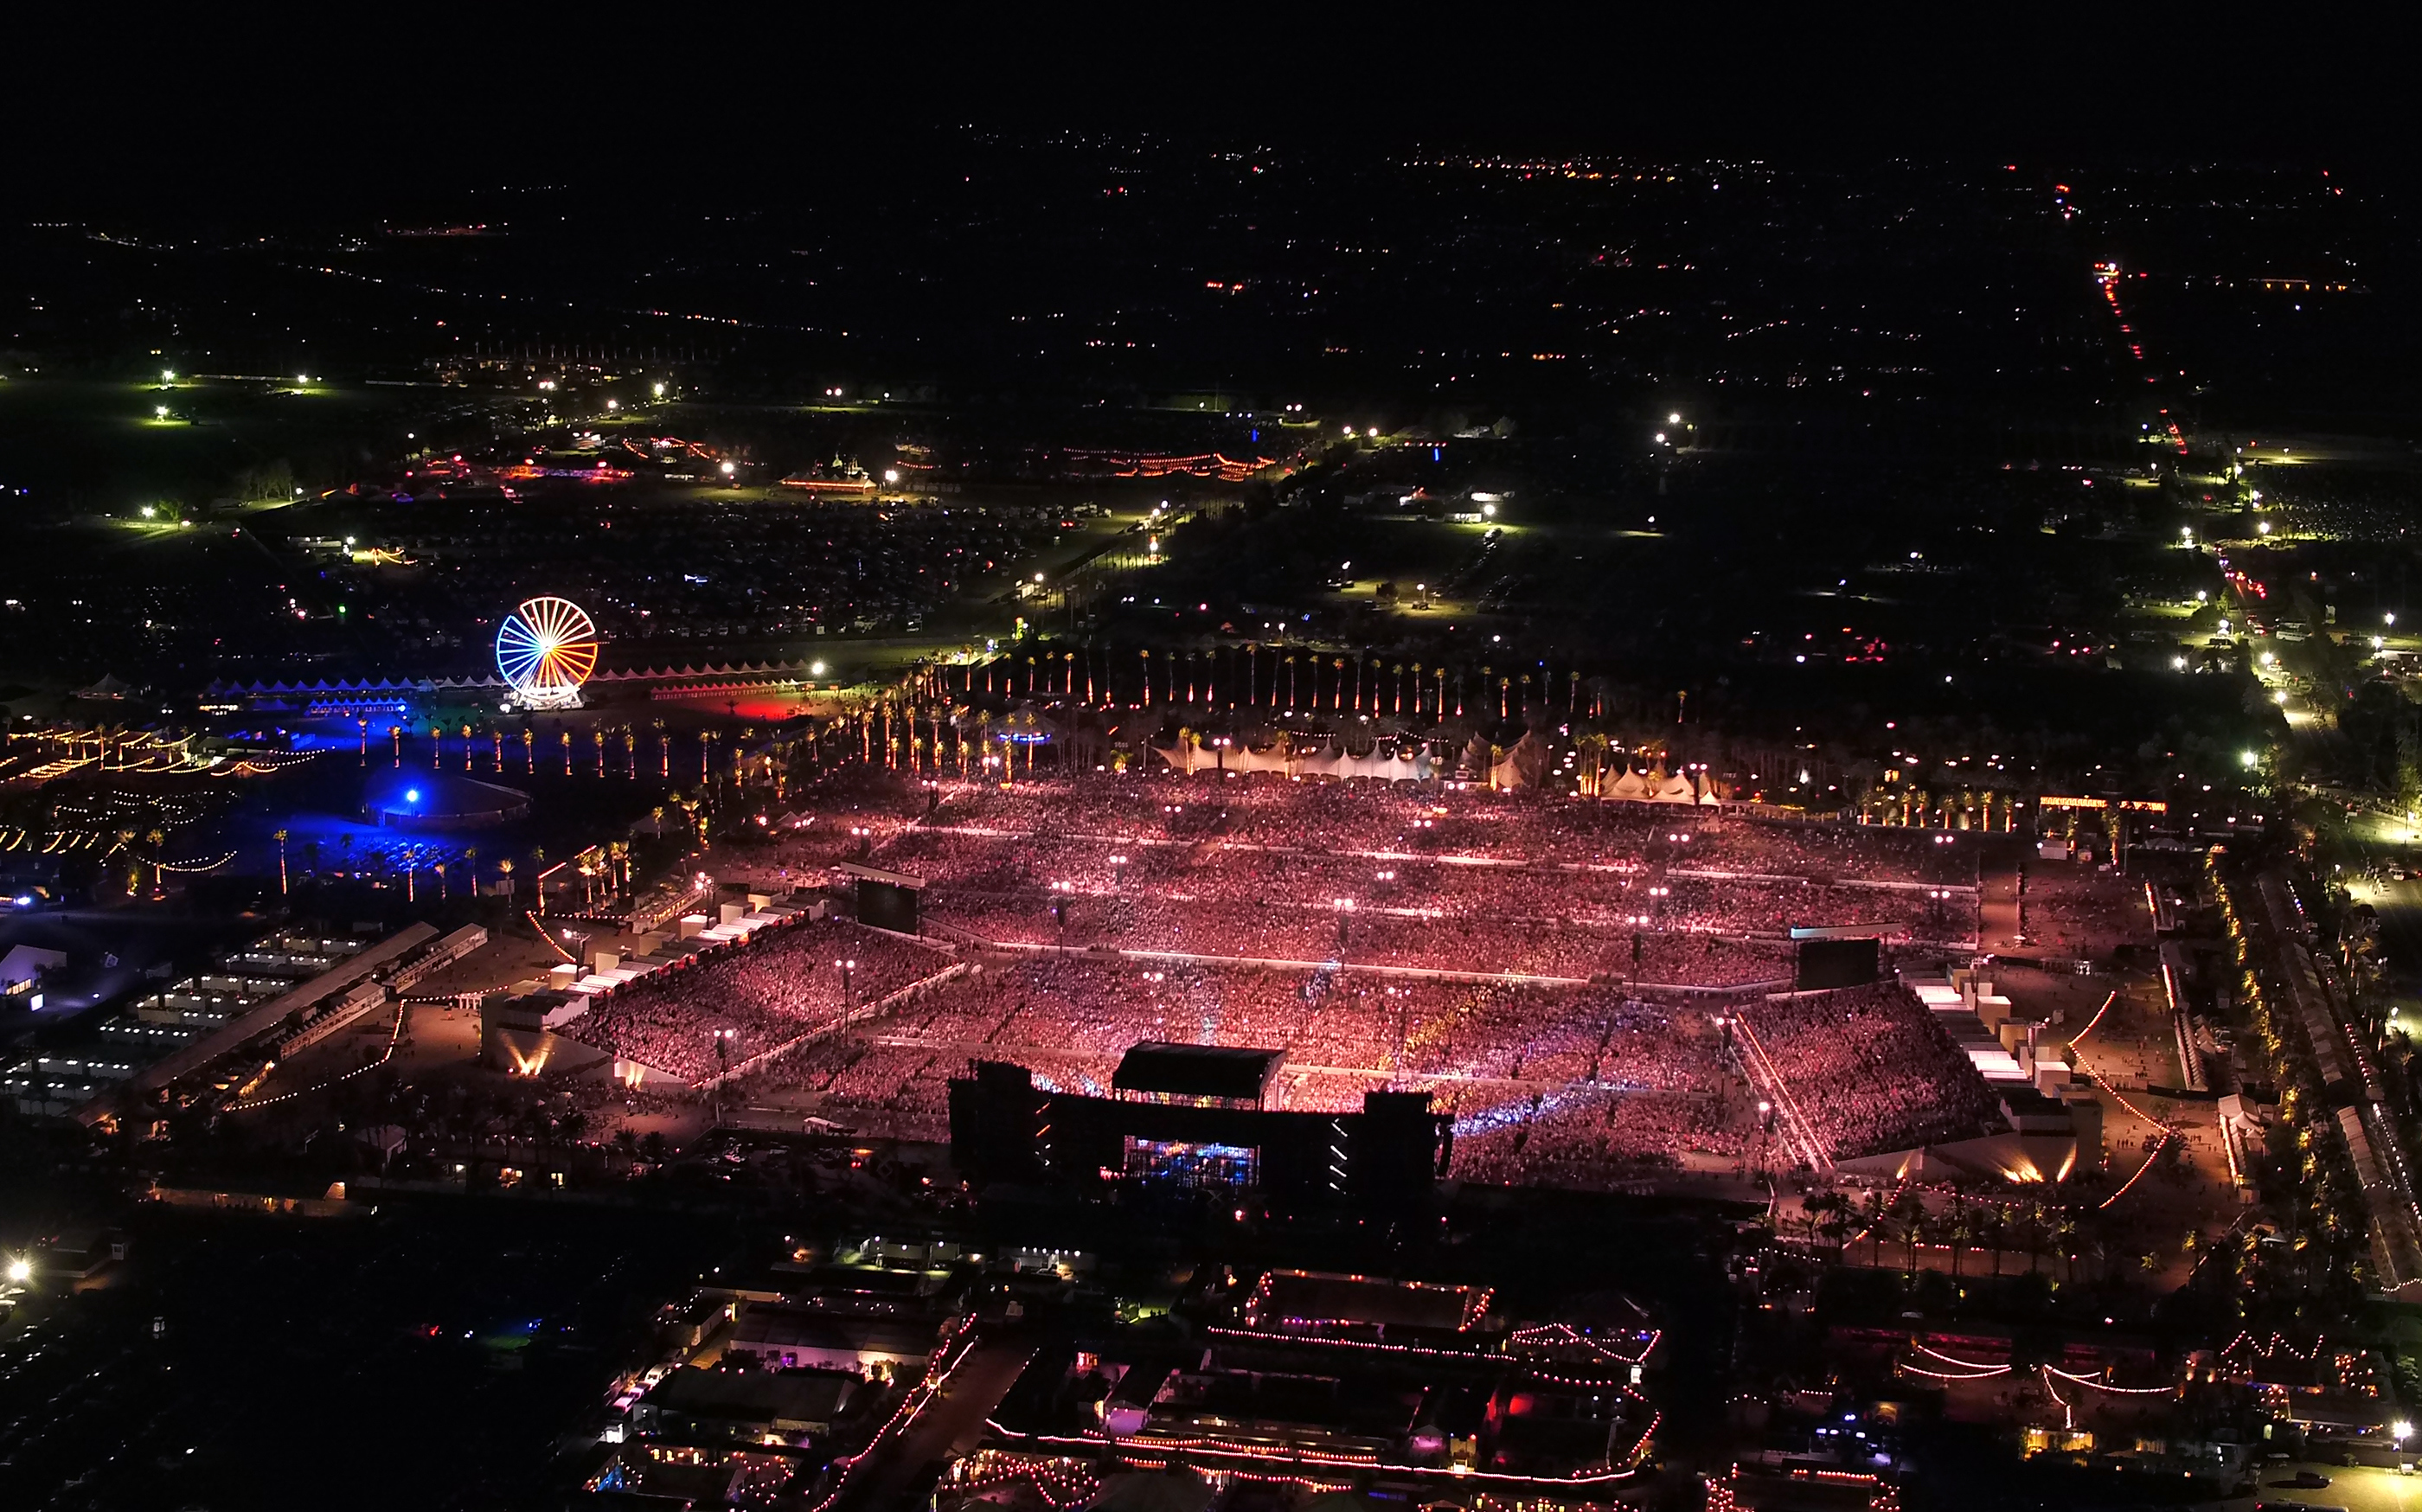 The Desert Trip crowd seen from above during Weekend One. (Photo by Kevin Mazur/Getty Images for Desert Trip)